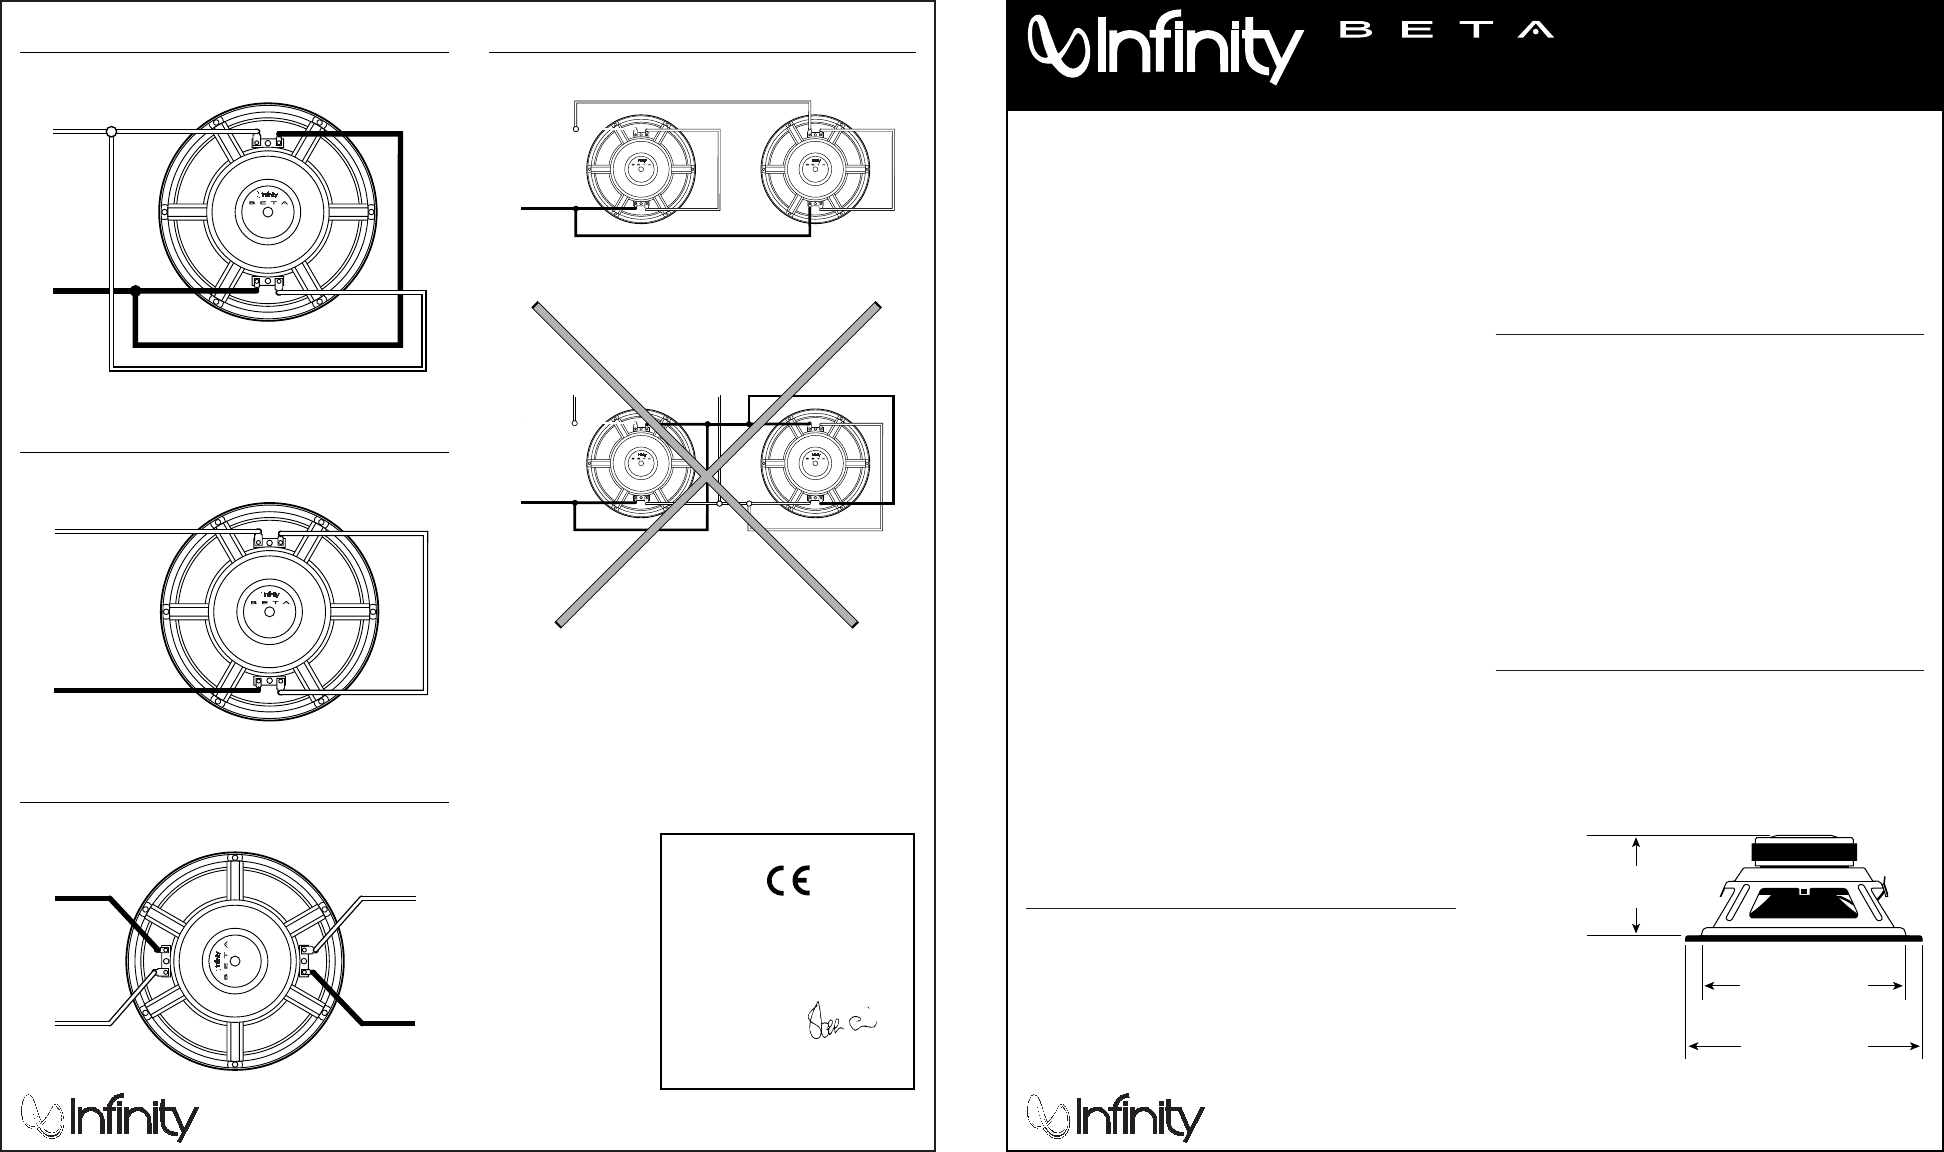 Infinity Speaker Beta Ten Dvc User Guide